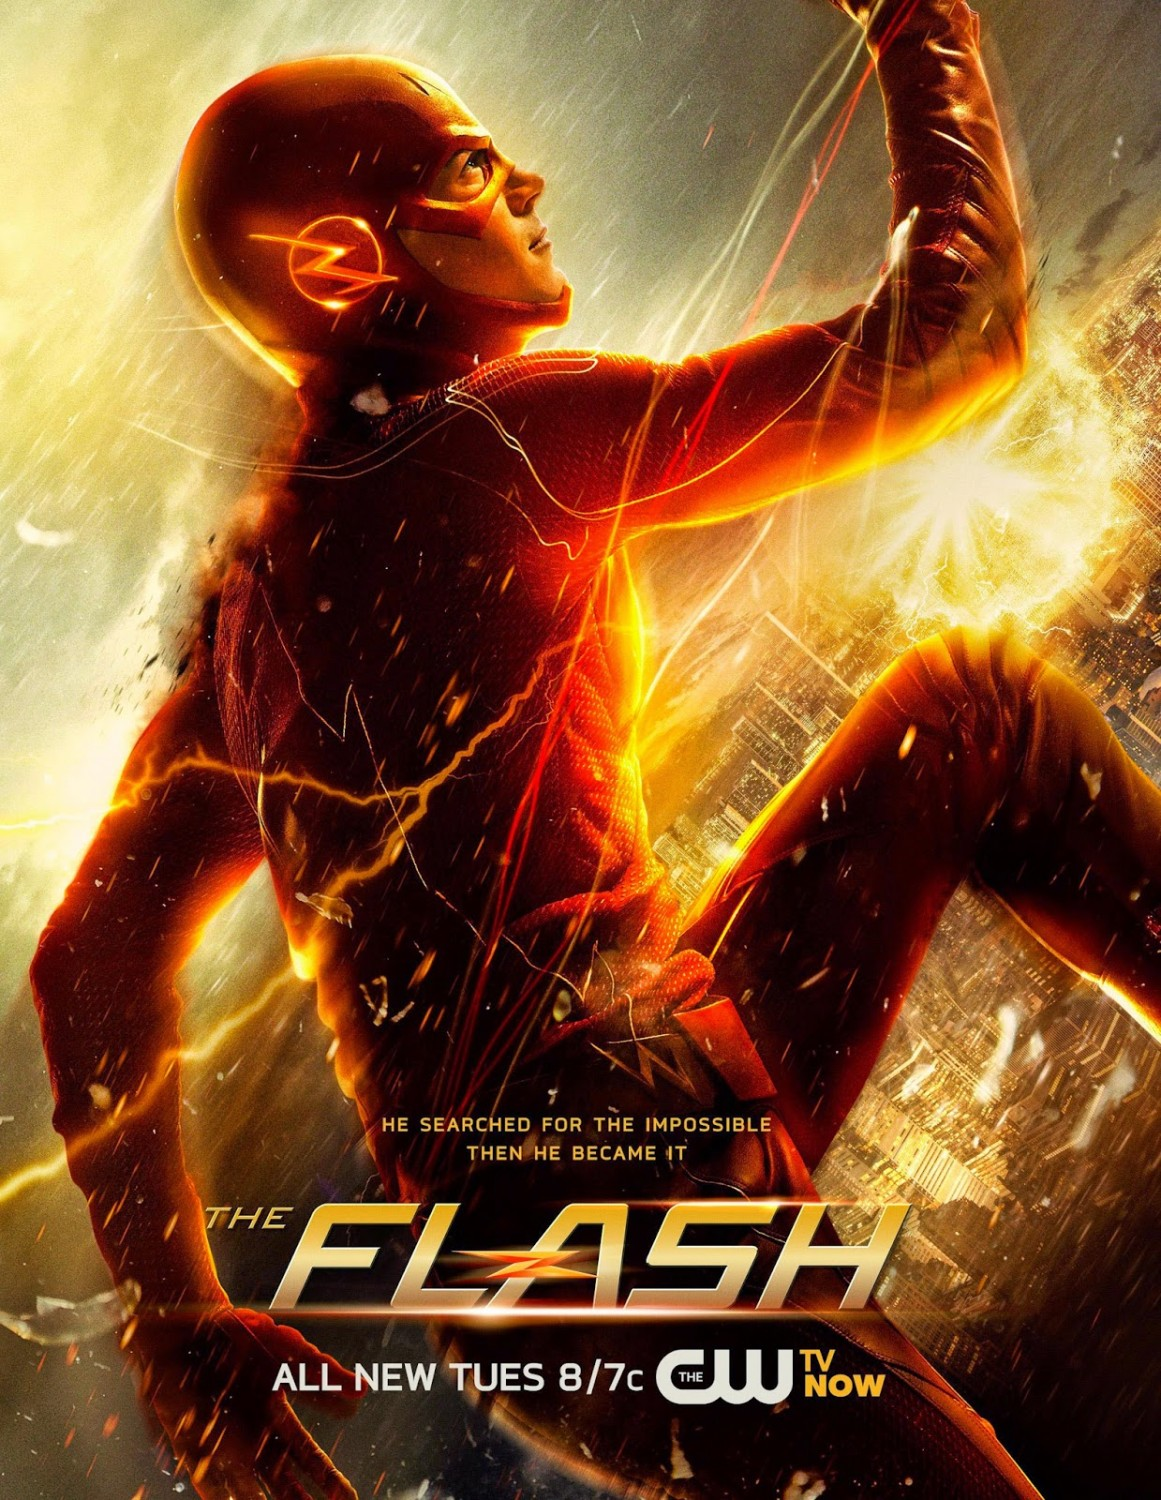 Arquivo:The Flash promo poster - He searched for the impossible Then he became it.png